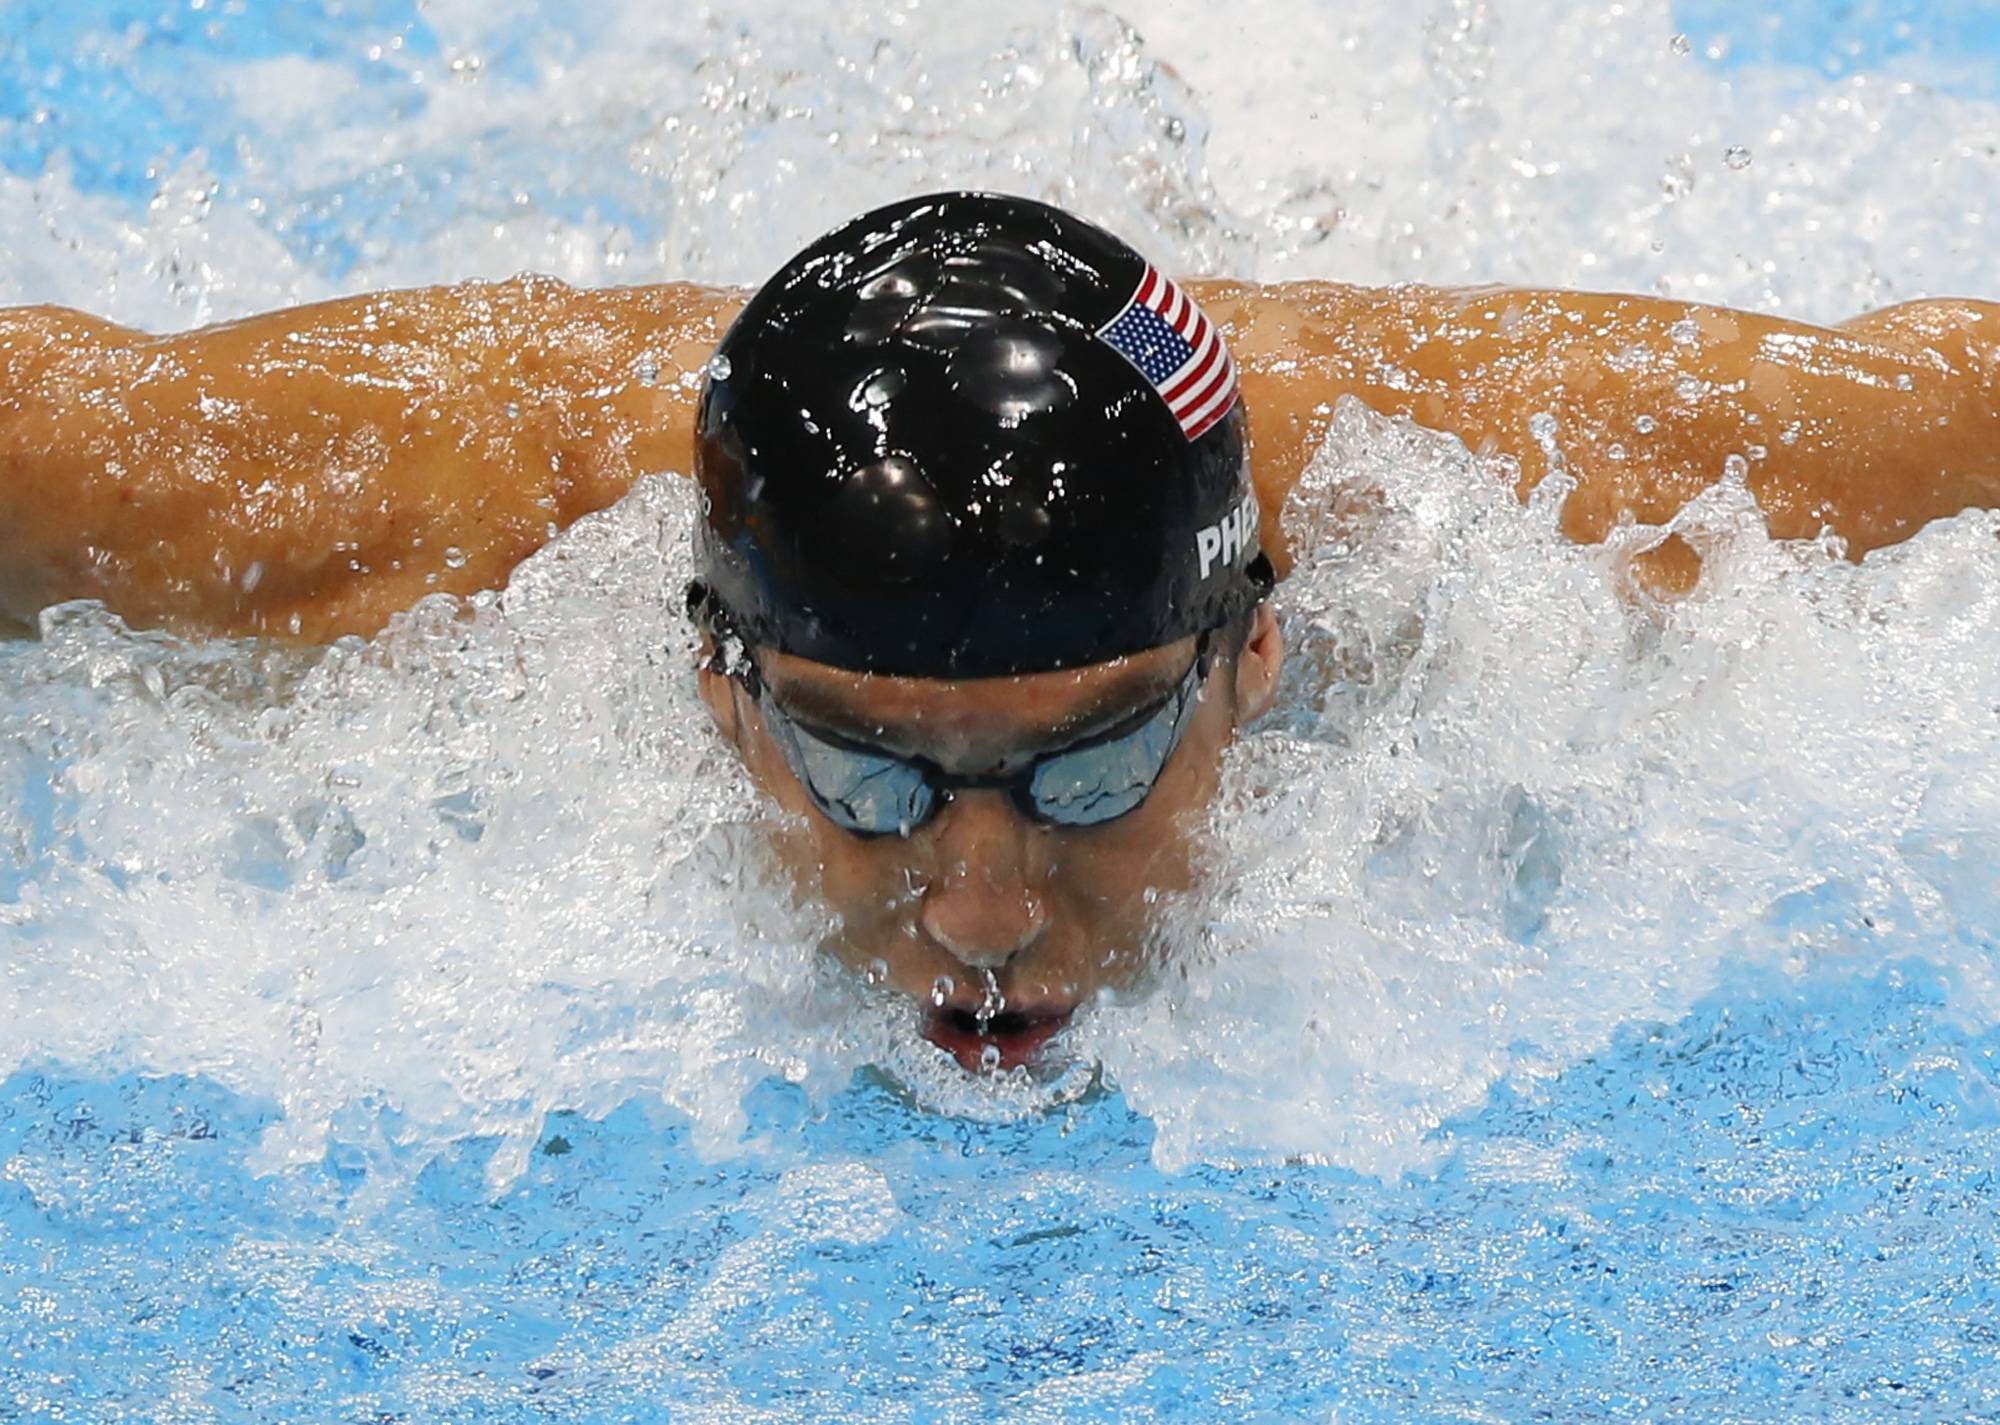 Michael Phelps is coming out of retirement, the first step toward possibly swimming at the 2016 Rio Olympics. Bob Bowman, the swimmer's longtime coach, told The Associated Press on Mondaythat Phelps is entered in three events — the 50- and 100-meter freestyles and the 100 butterfly at his first meet since the 2012 London Games at a meet in Mesa, Ariz., on April 24-26.